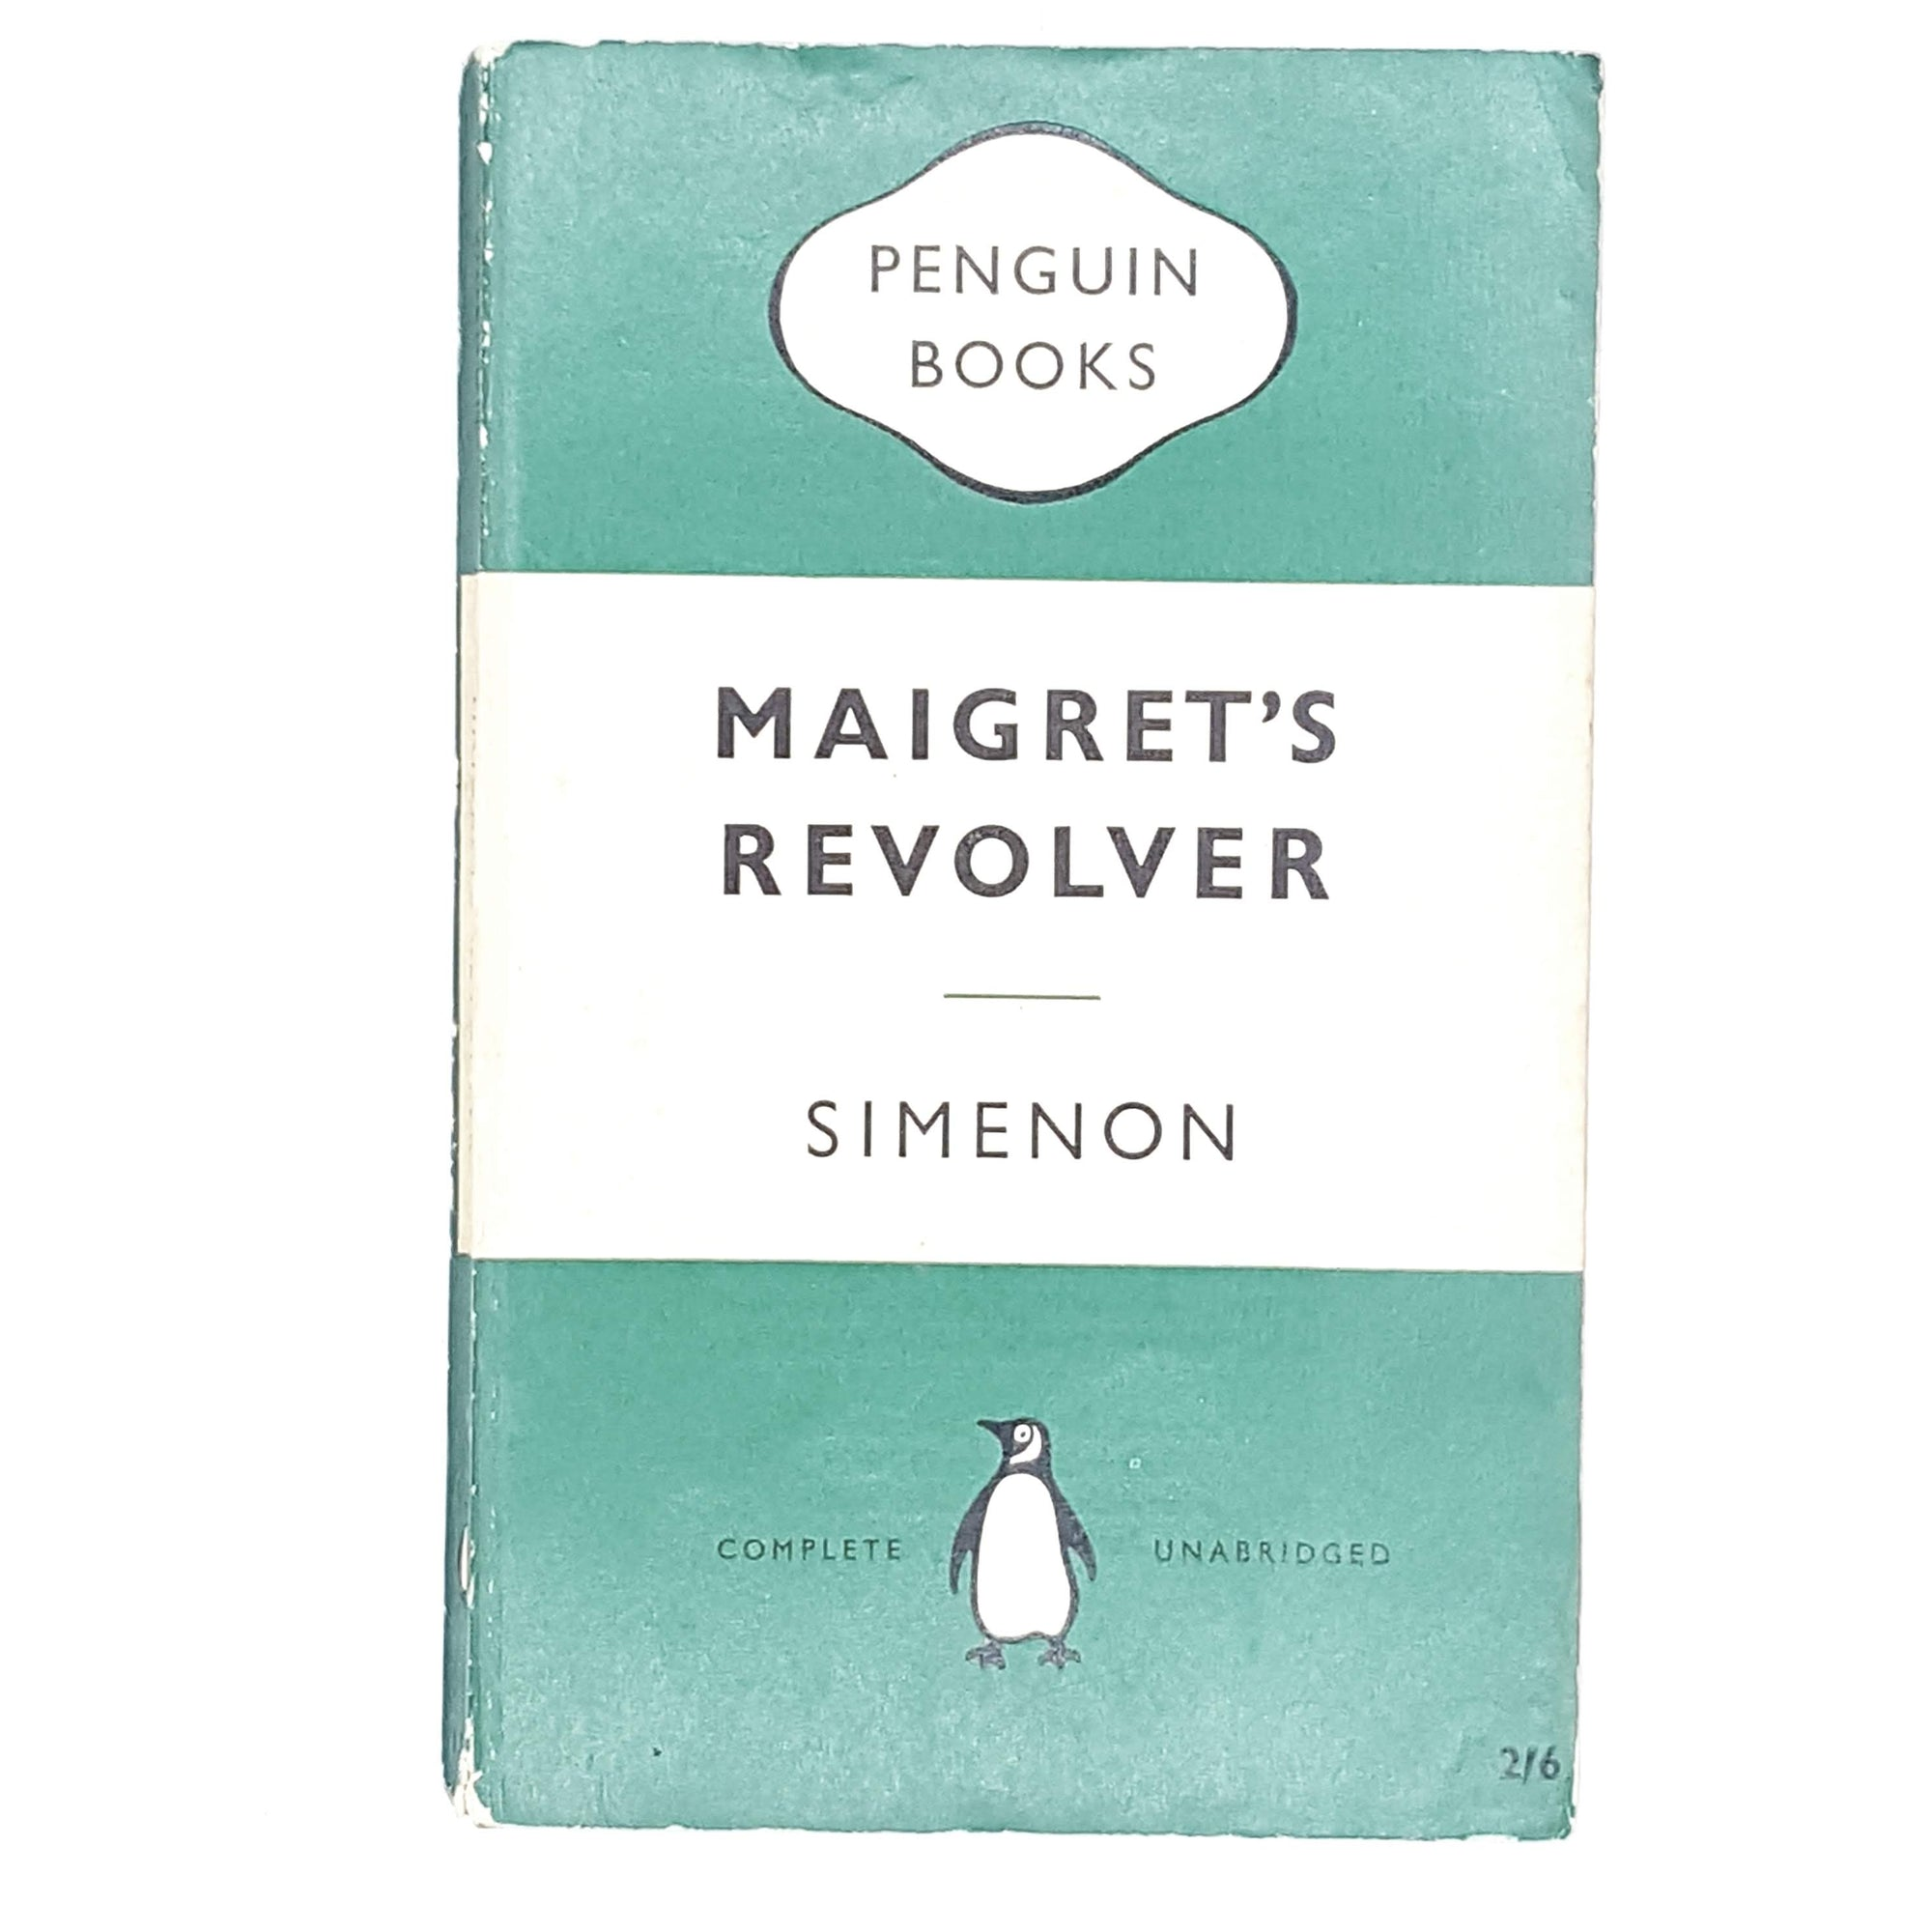 First Edition Penguin Maigret's Revolver by Simenon 1959